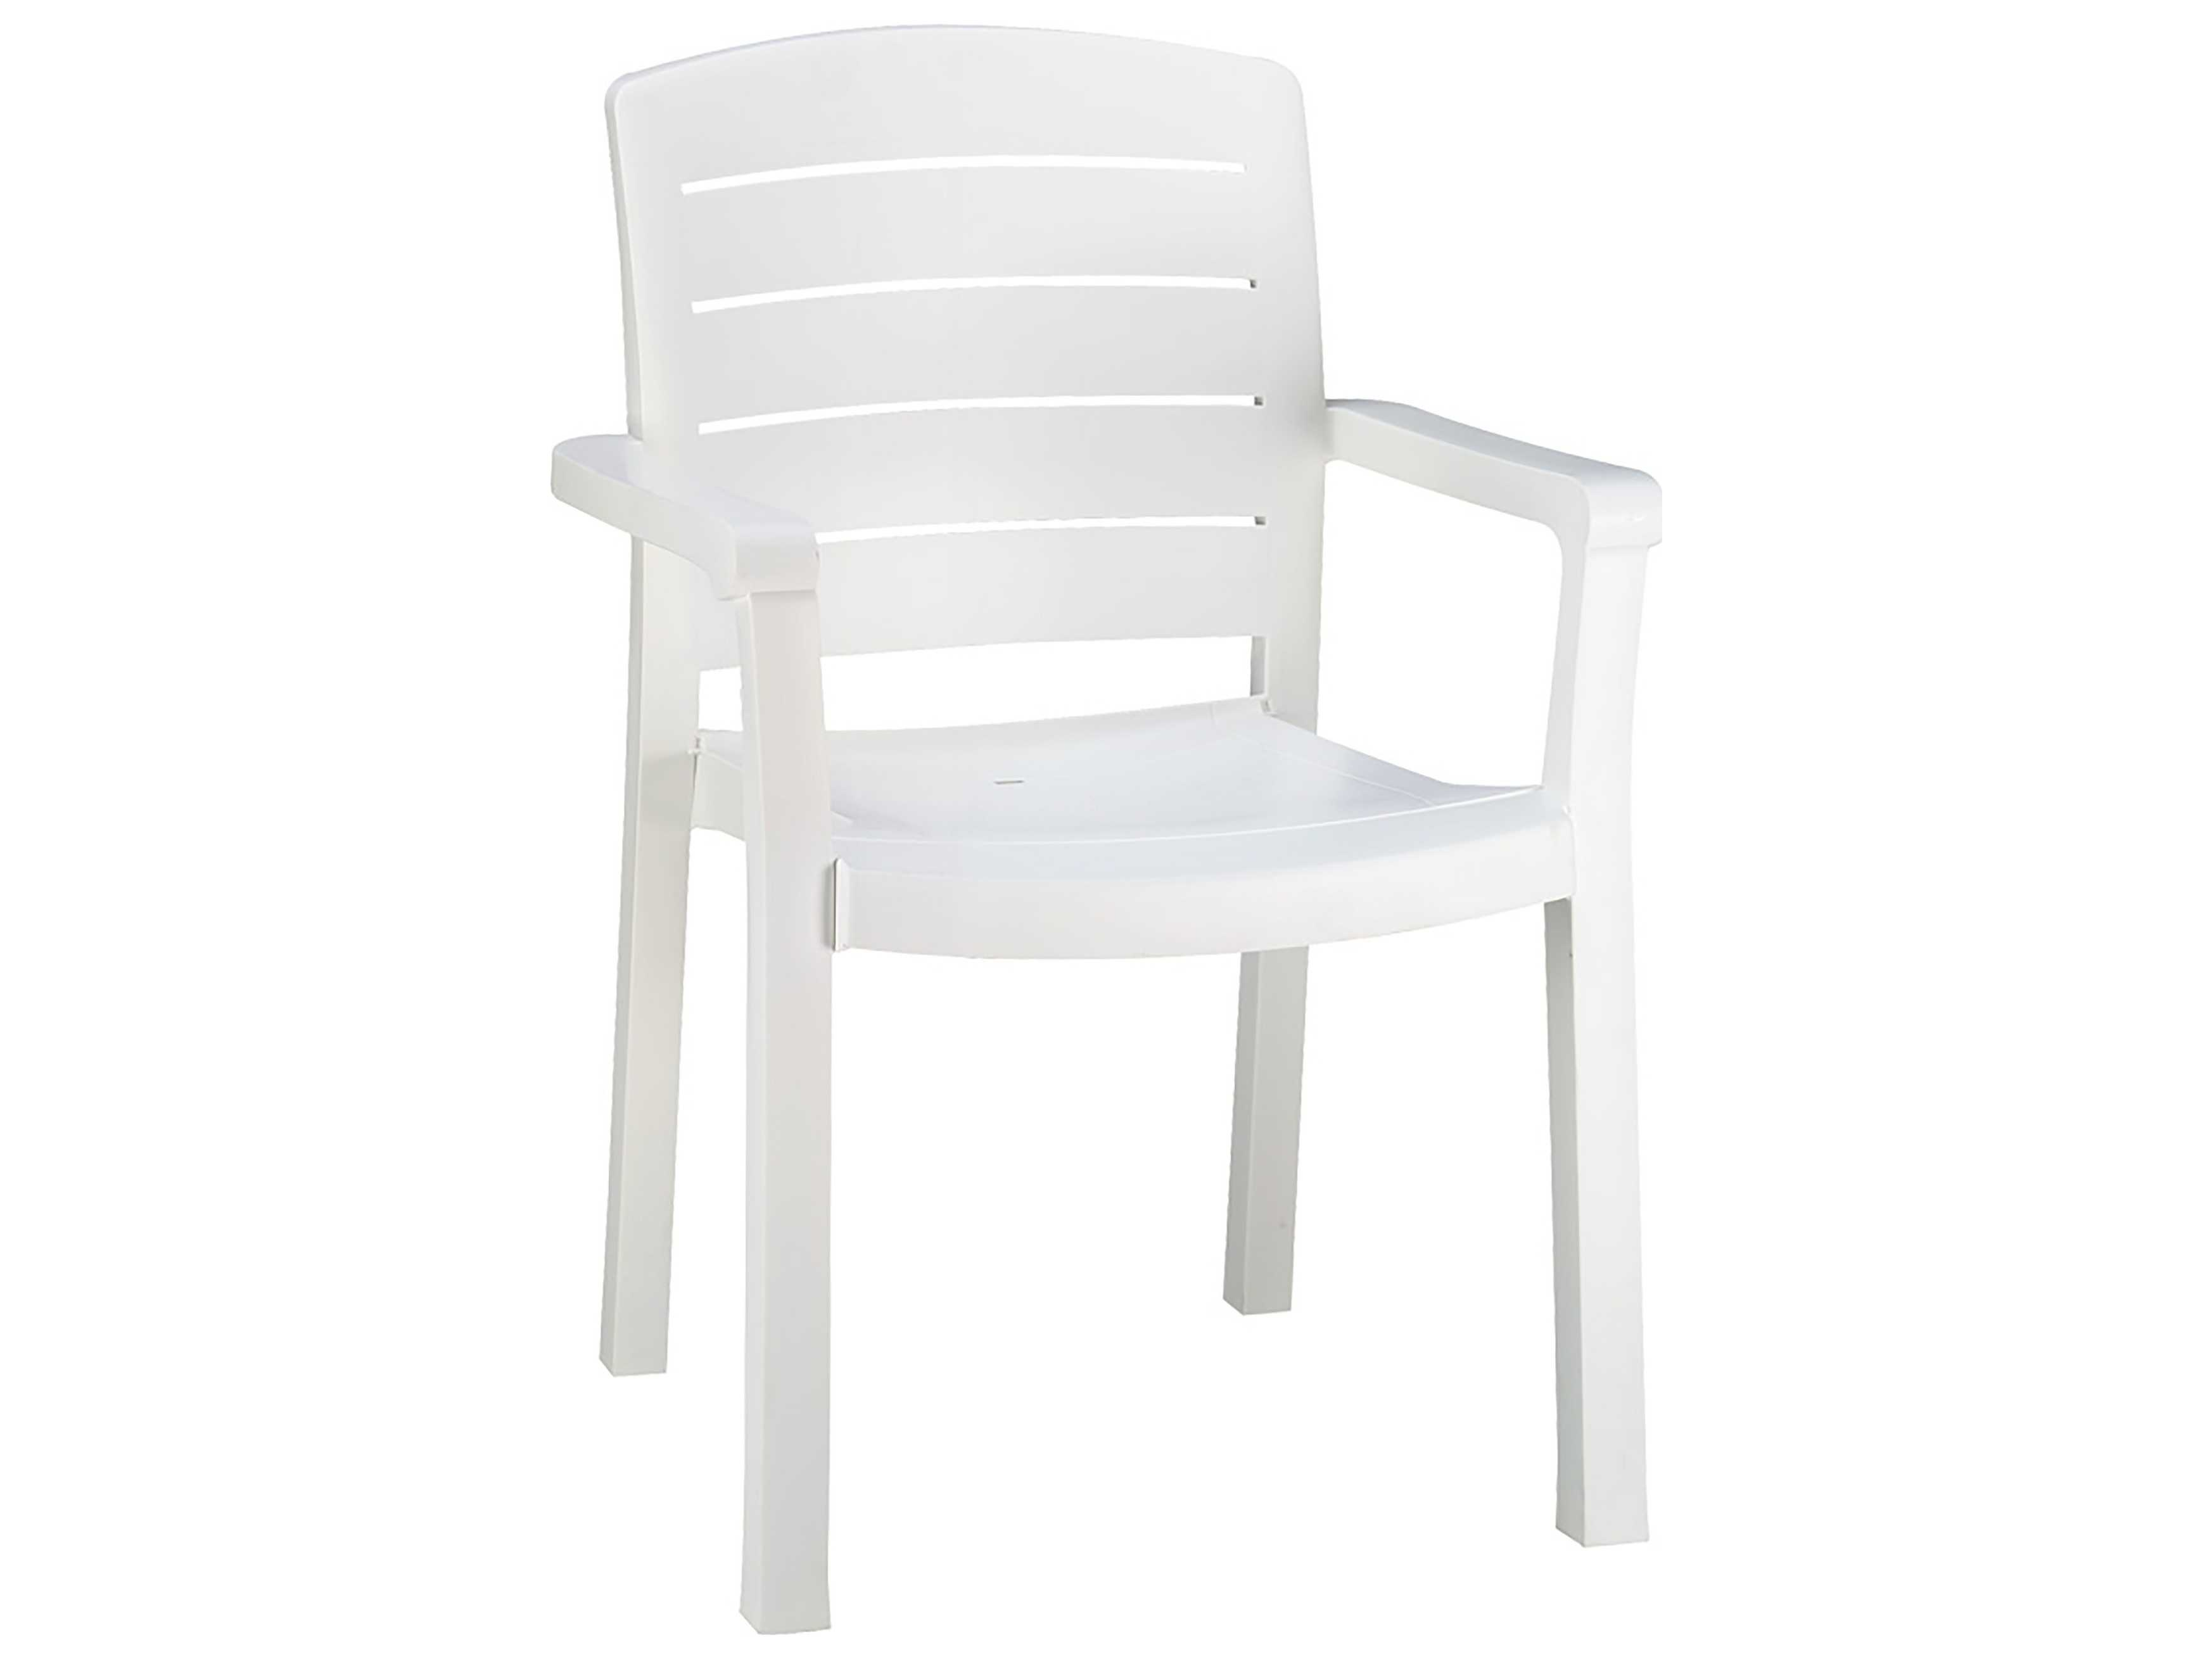 Grosfillex Acadia Resin White Stacking Dining Arm Chair Sold In 4 Gxus119004